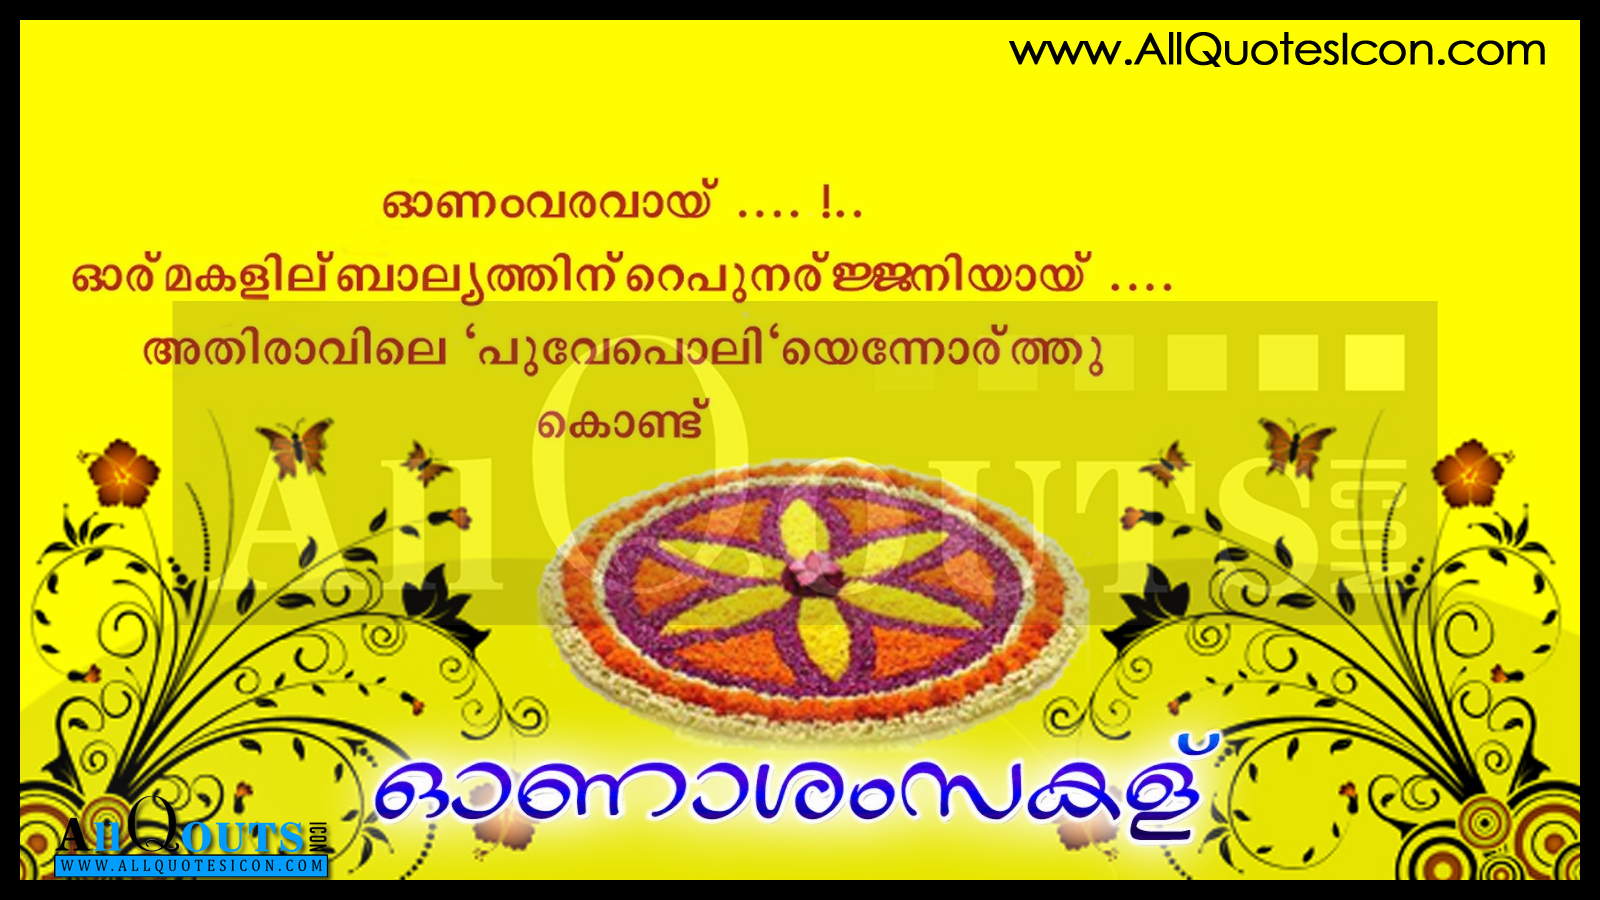 Best onam greetings quotes in malayalam hd wallpapers best onam wishes in malayalam best onam wishes nice onam wishes onam hd wallpapers kristyandbryce Image collections